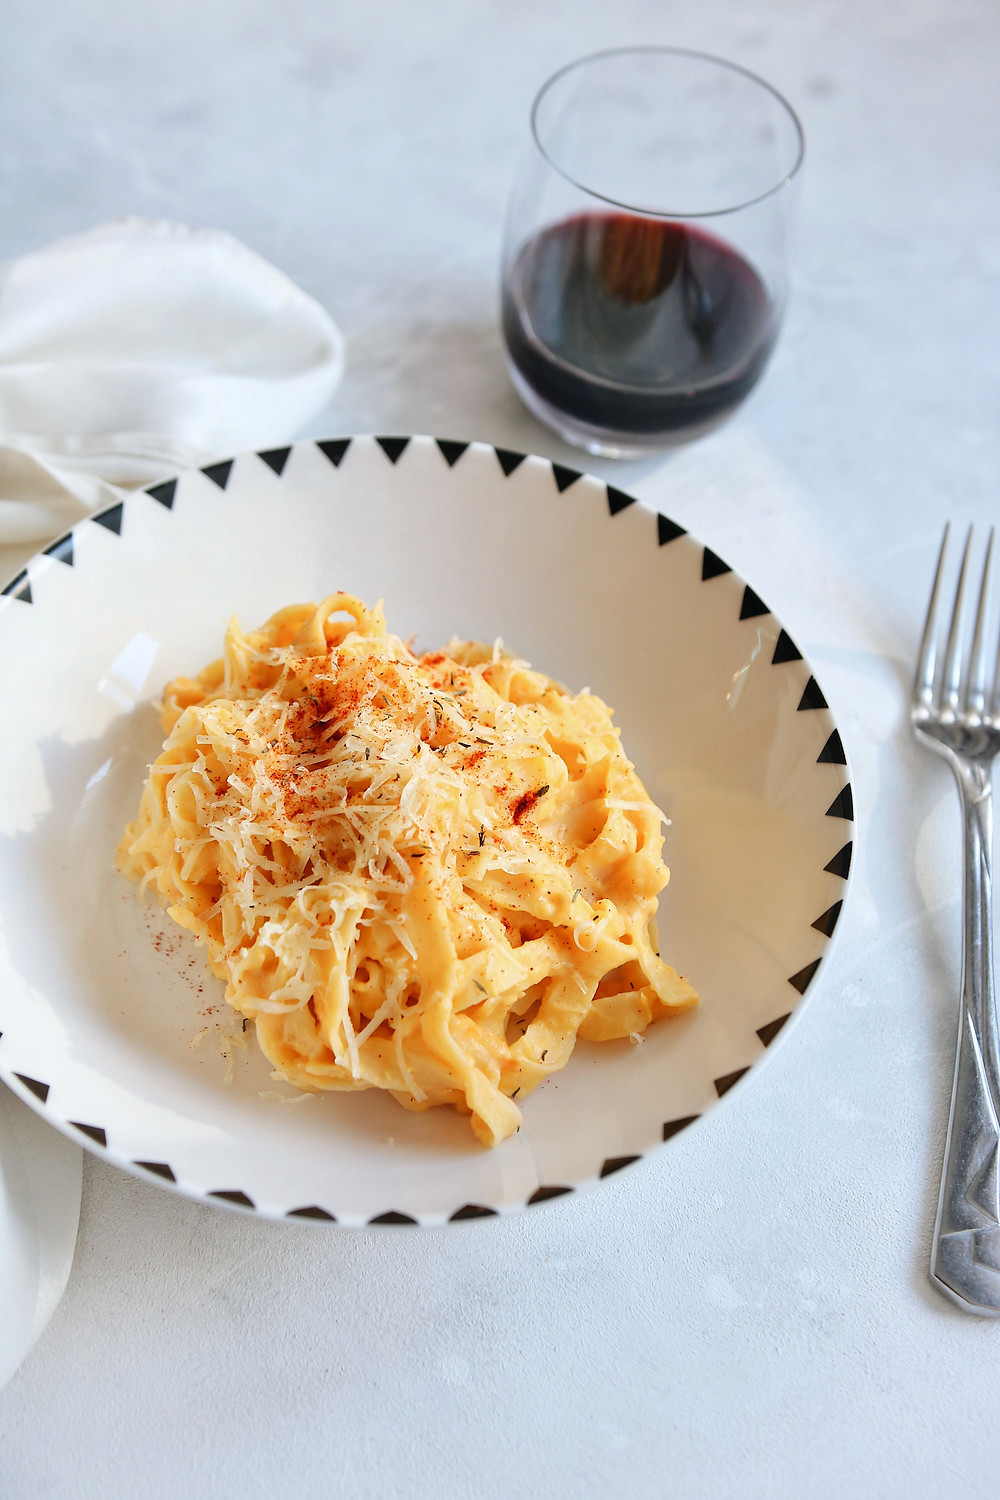 A plate with pasta and butternut squash sauce on a white background, with napkin, red wine and fork in the image.